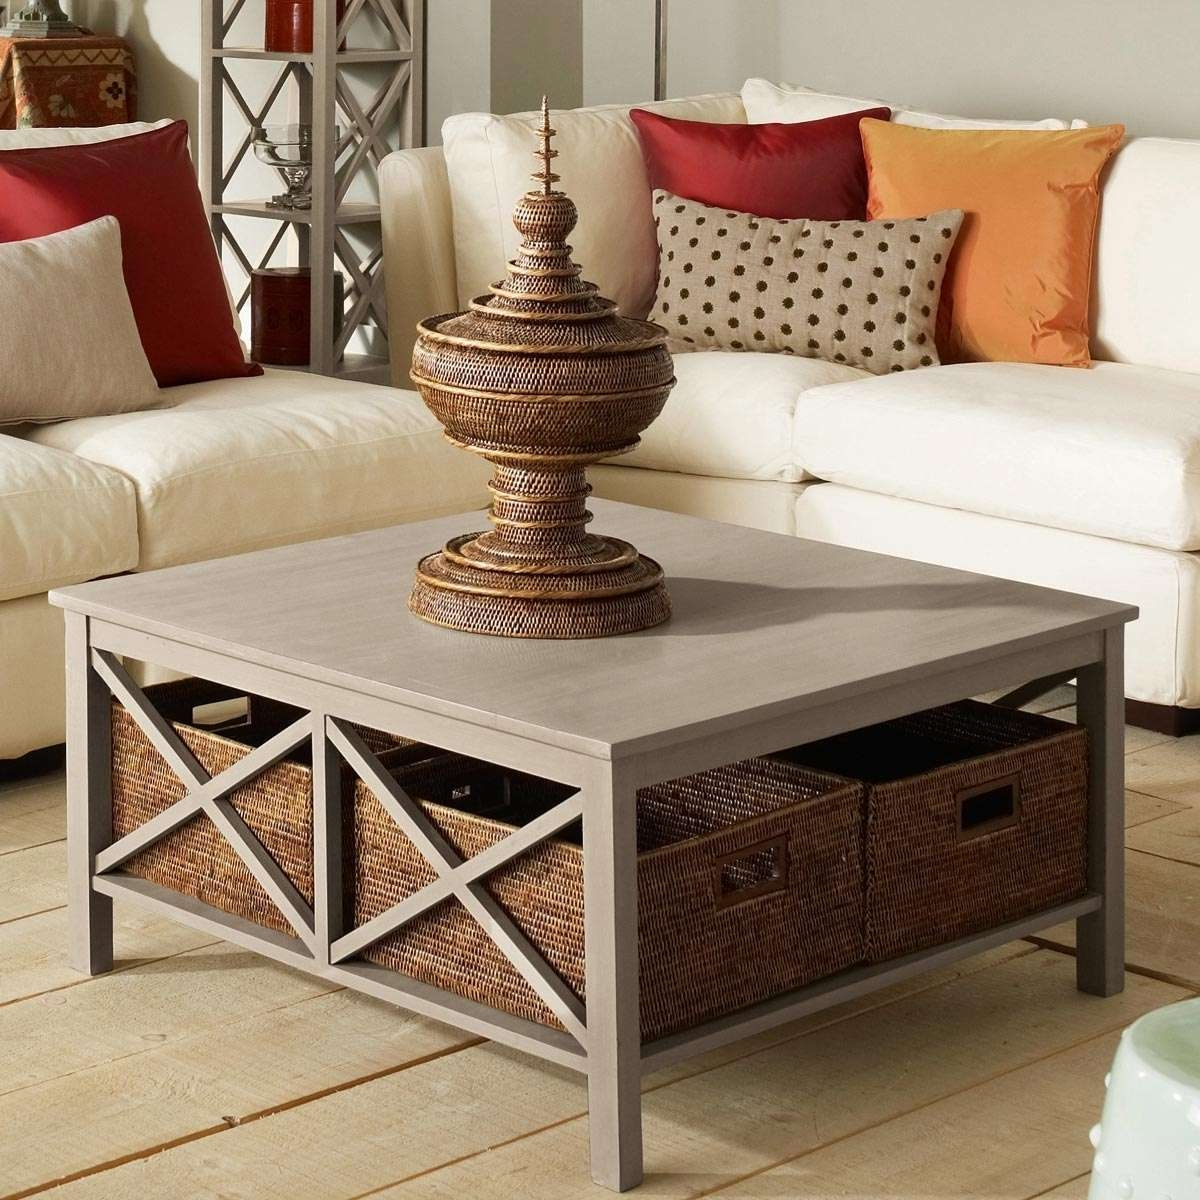 Widely Used Square Coffee Table Storages Pertaining To Square Coffee Table With Storage Coffee Tables Inside Coffee Table (View 17 of 20)